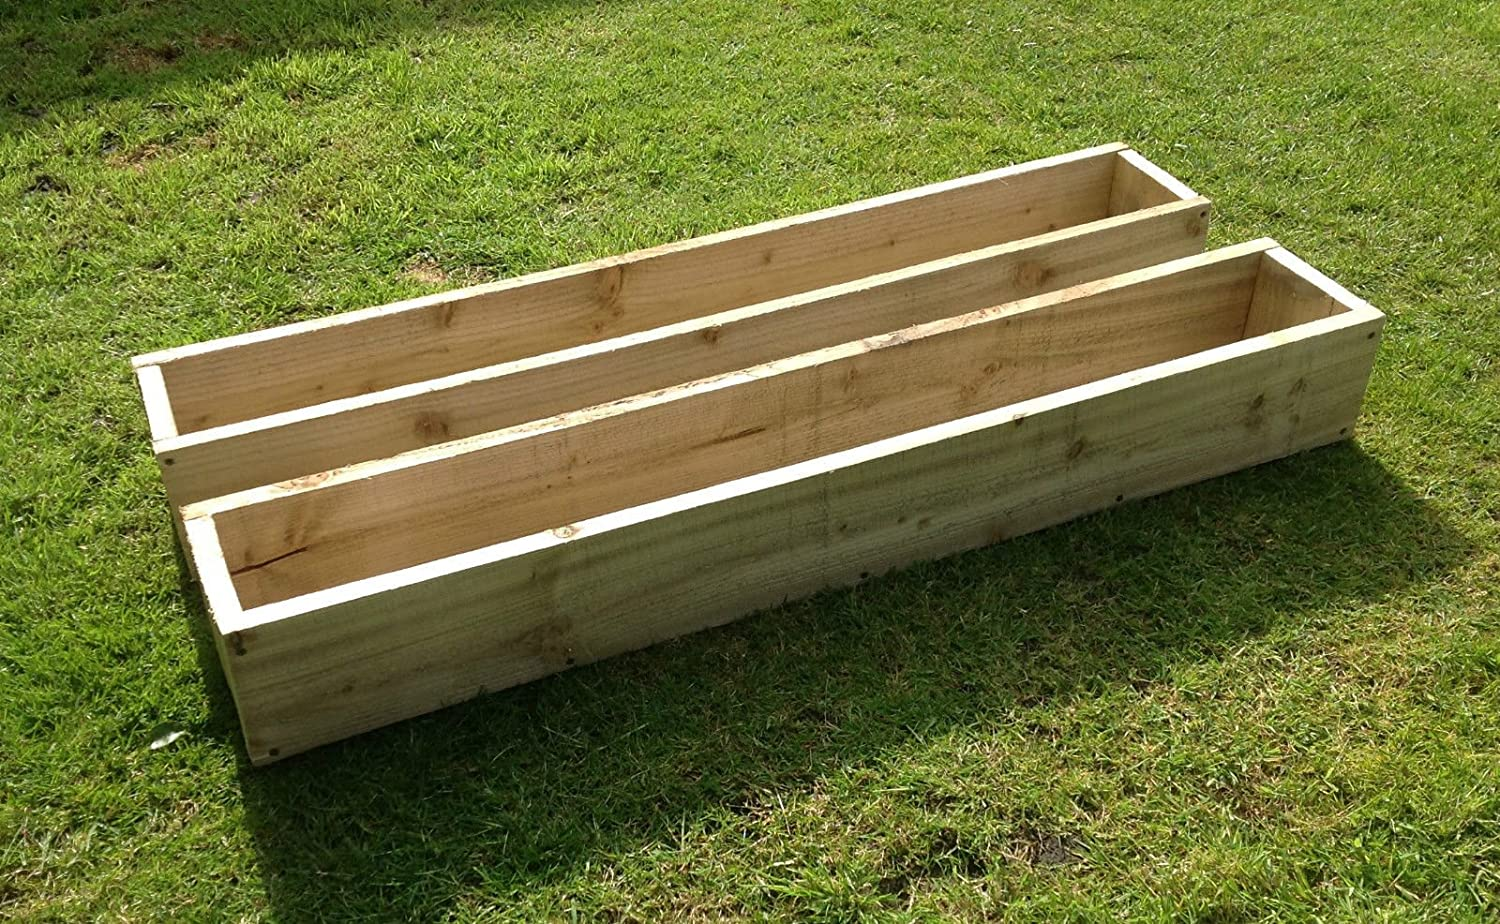 2 x 90cm Long (3ft) Wooden Garden/Patio/Window Box Planters: Fully Assembled - Just add plants: Fast & Free Delivery Home & Garden Designs